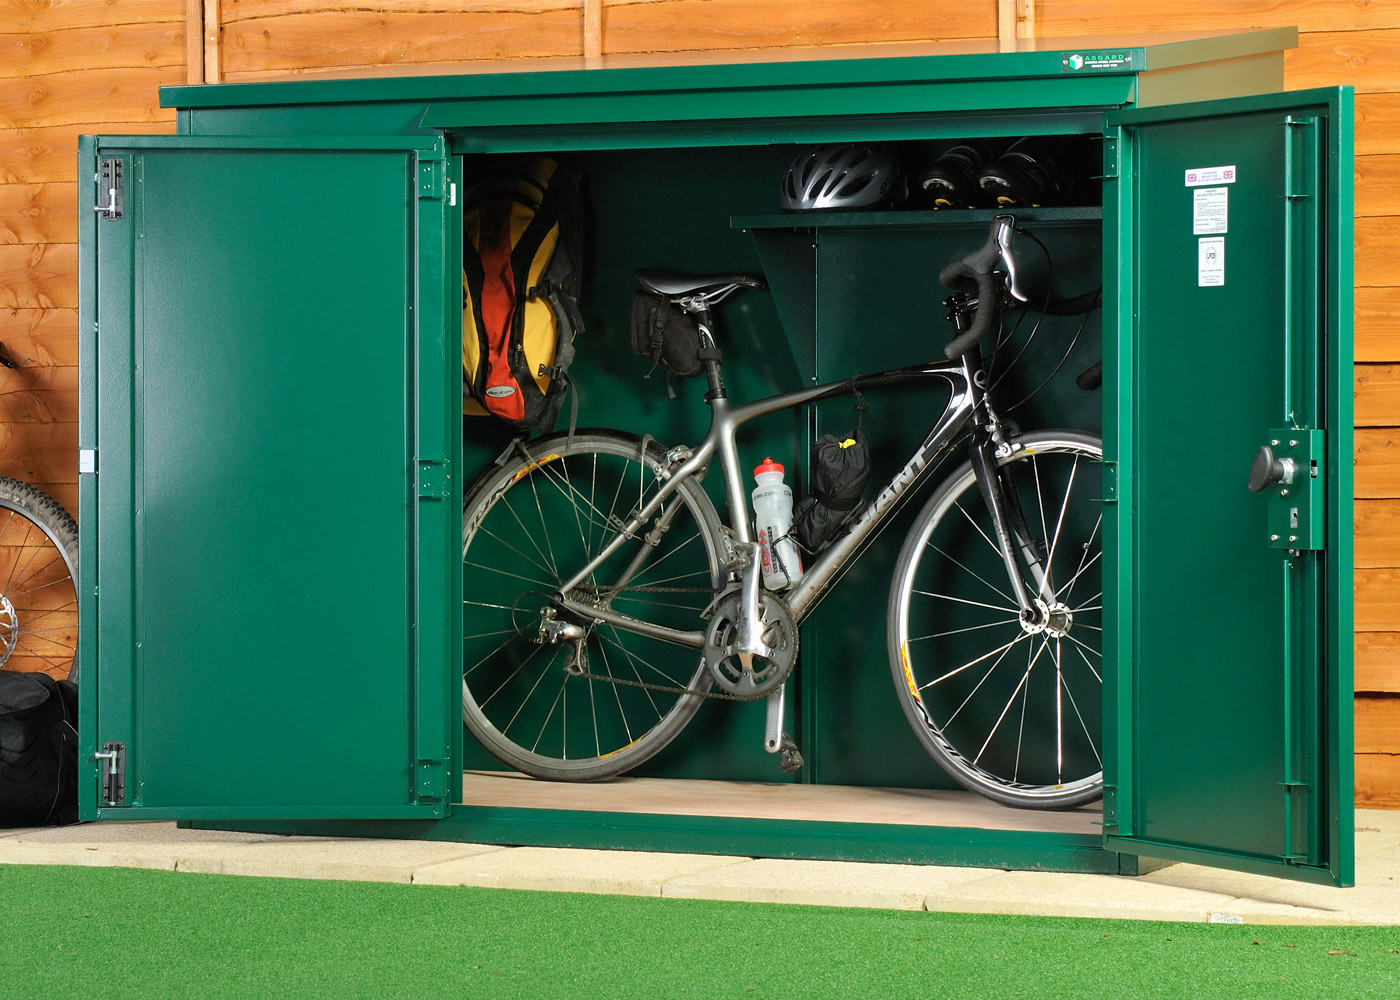 bike shed police approved - high security metal bike storage for up to 3 bikes ... HQOVFBF